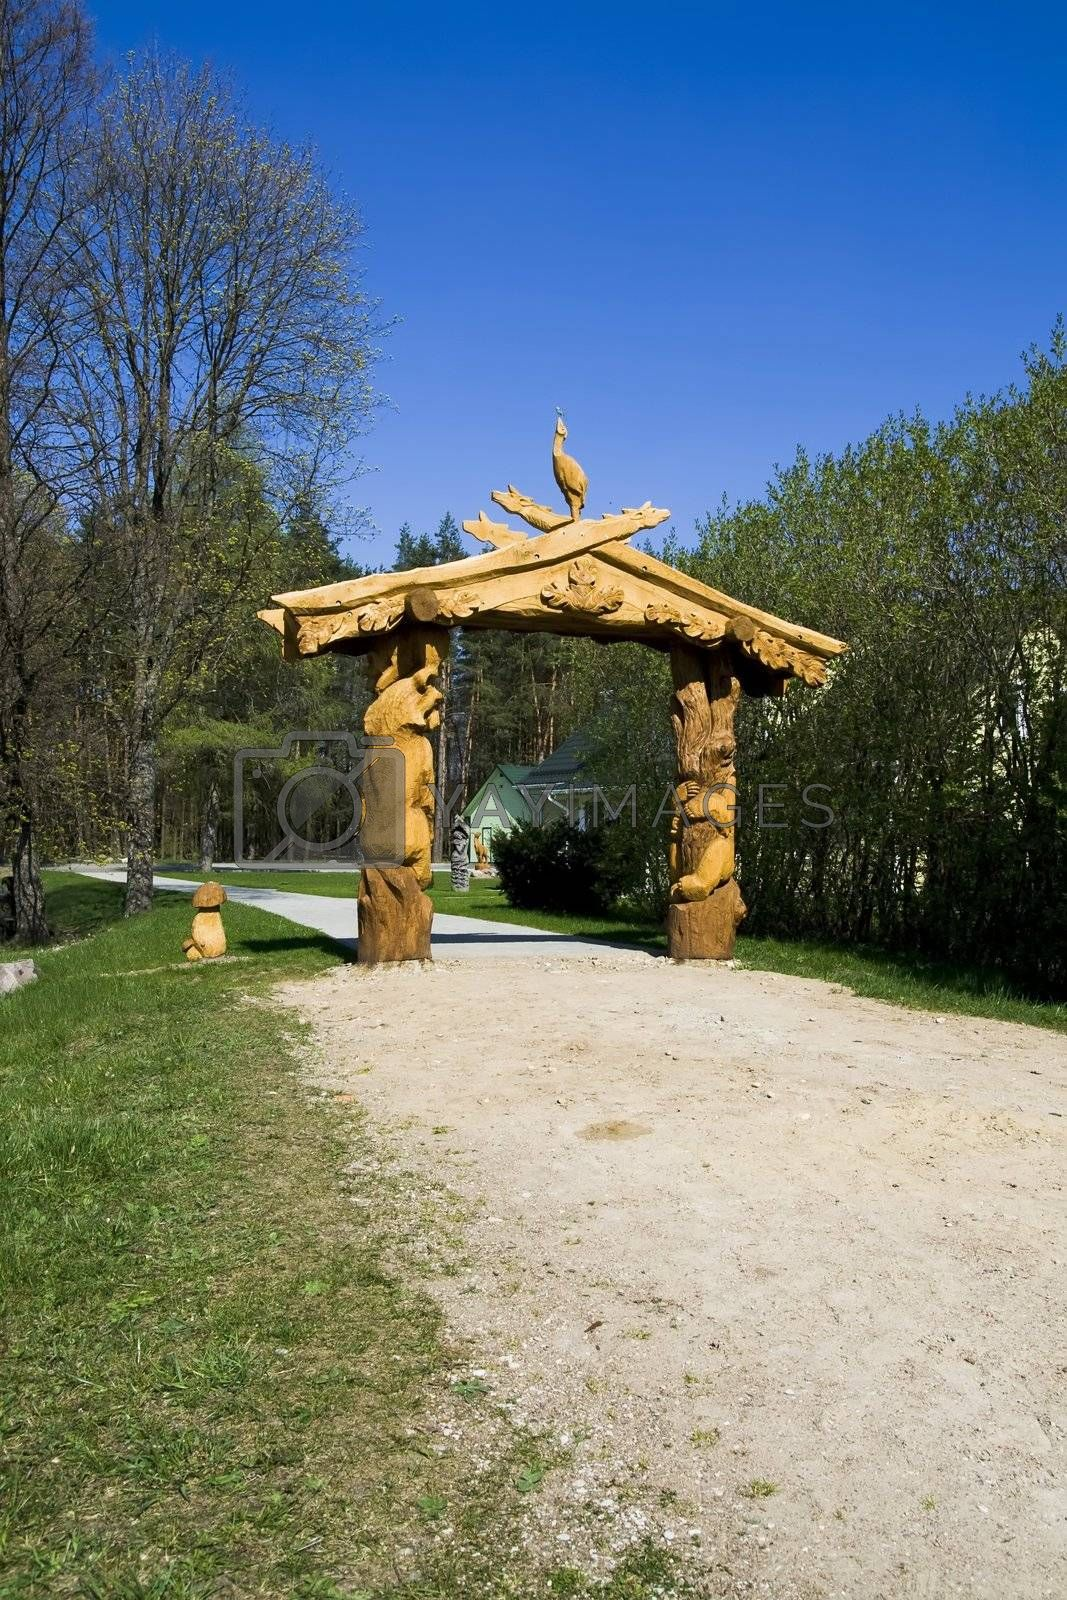 A wooden sculpture at the end of the path in the park